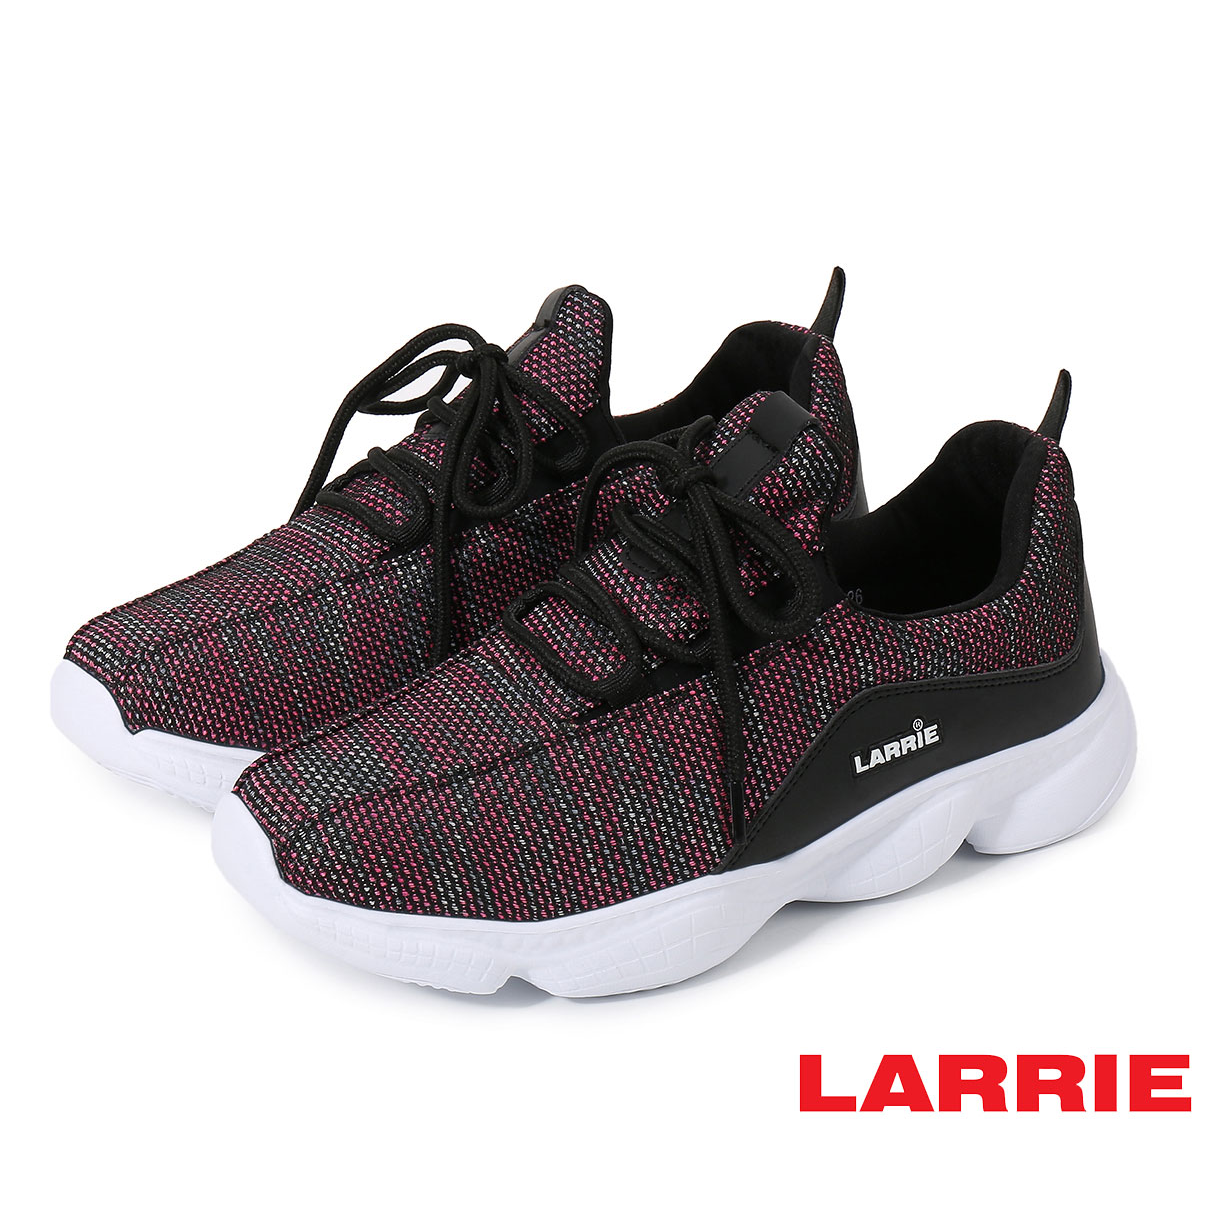 Larrie Pink Lace Up Lightweight Sporty Sneaker - L61915-KN01SV-26